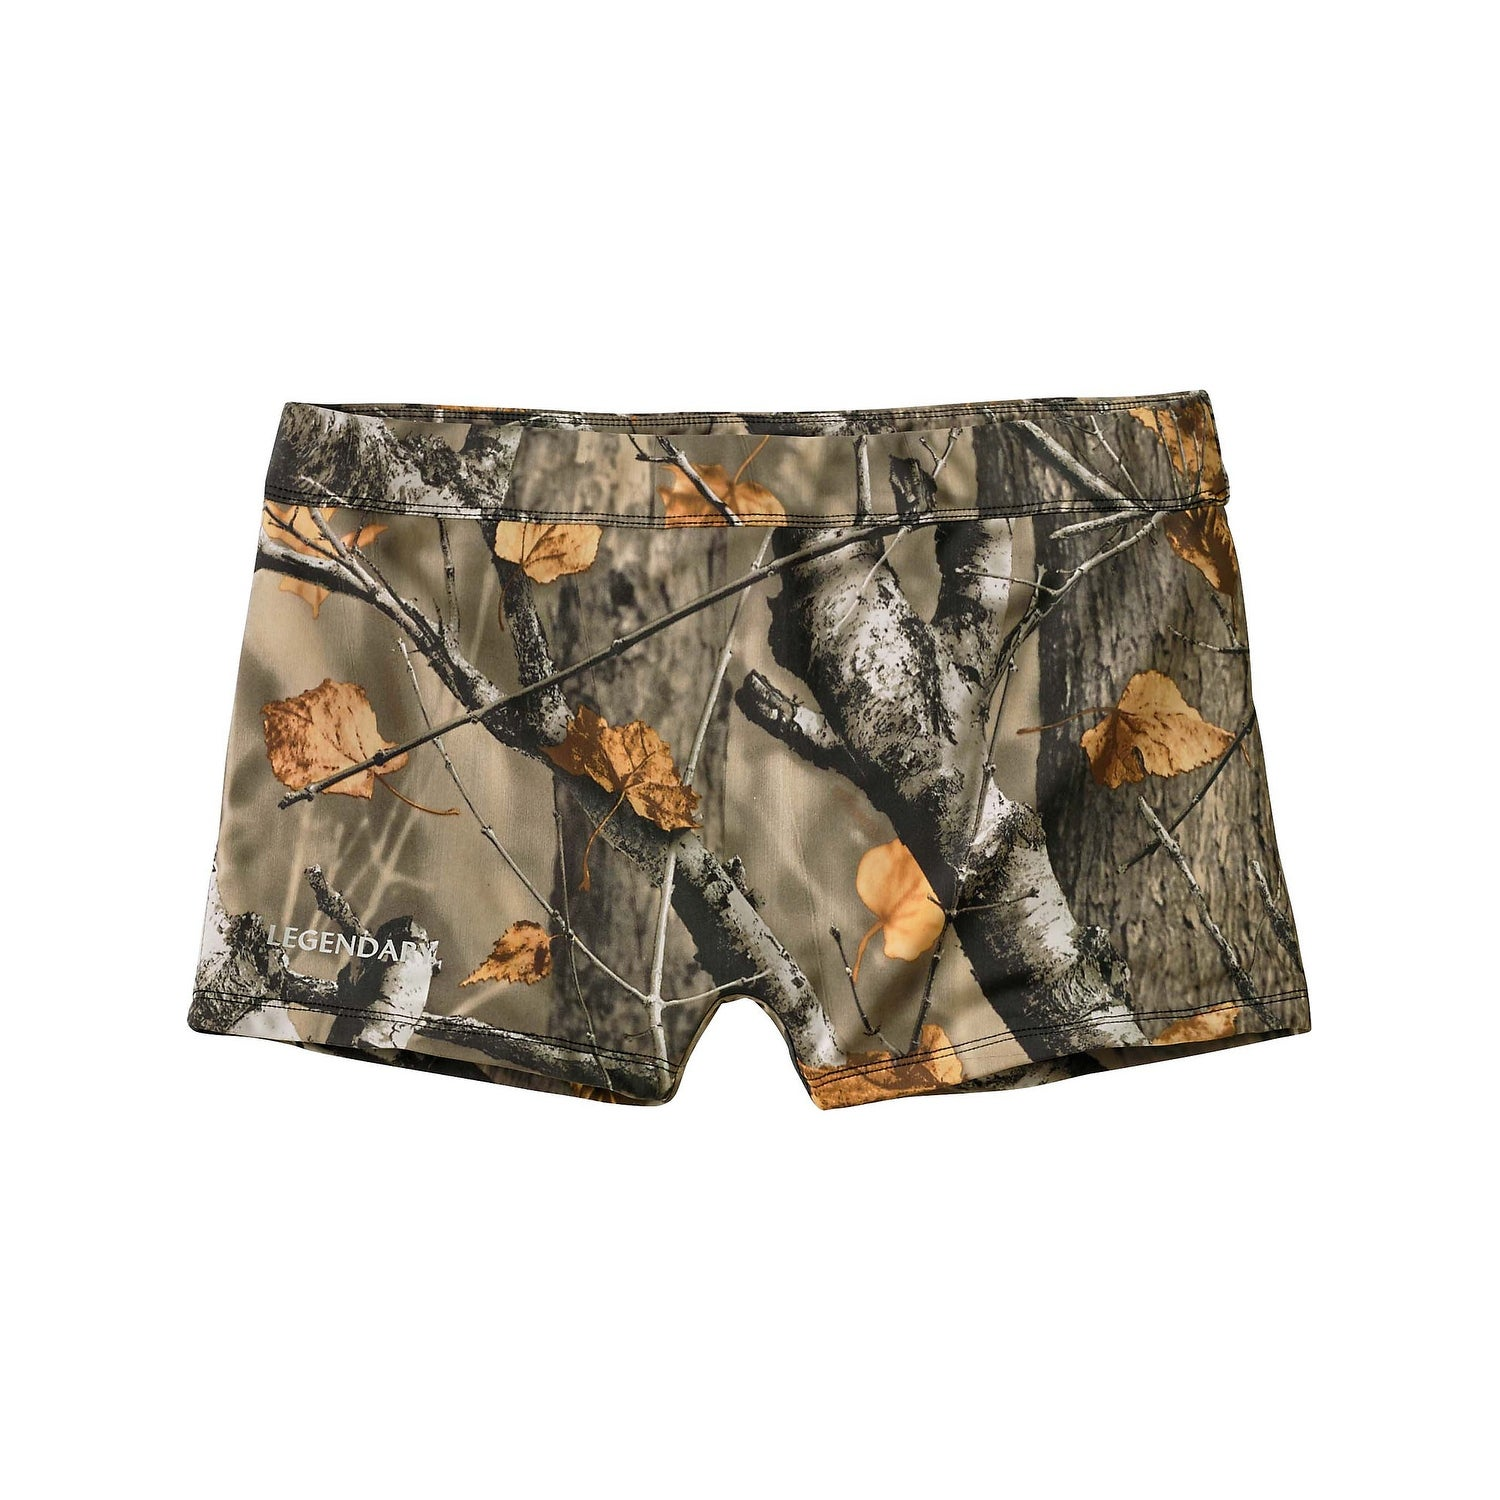 1d3a3fd321 Shop Legendary Whitetails Ladies Swimsuit Bottom Boy Shorts - Free Shipping  On Orders Over $45 - Overstock - 13378505